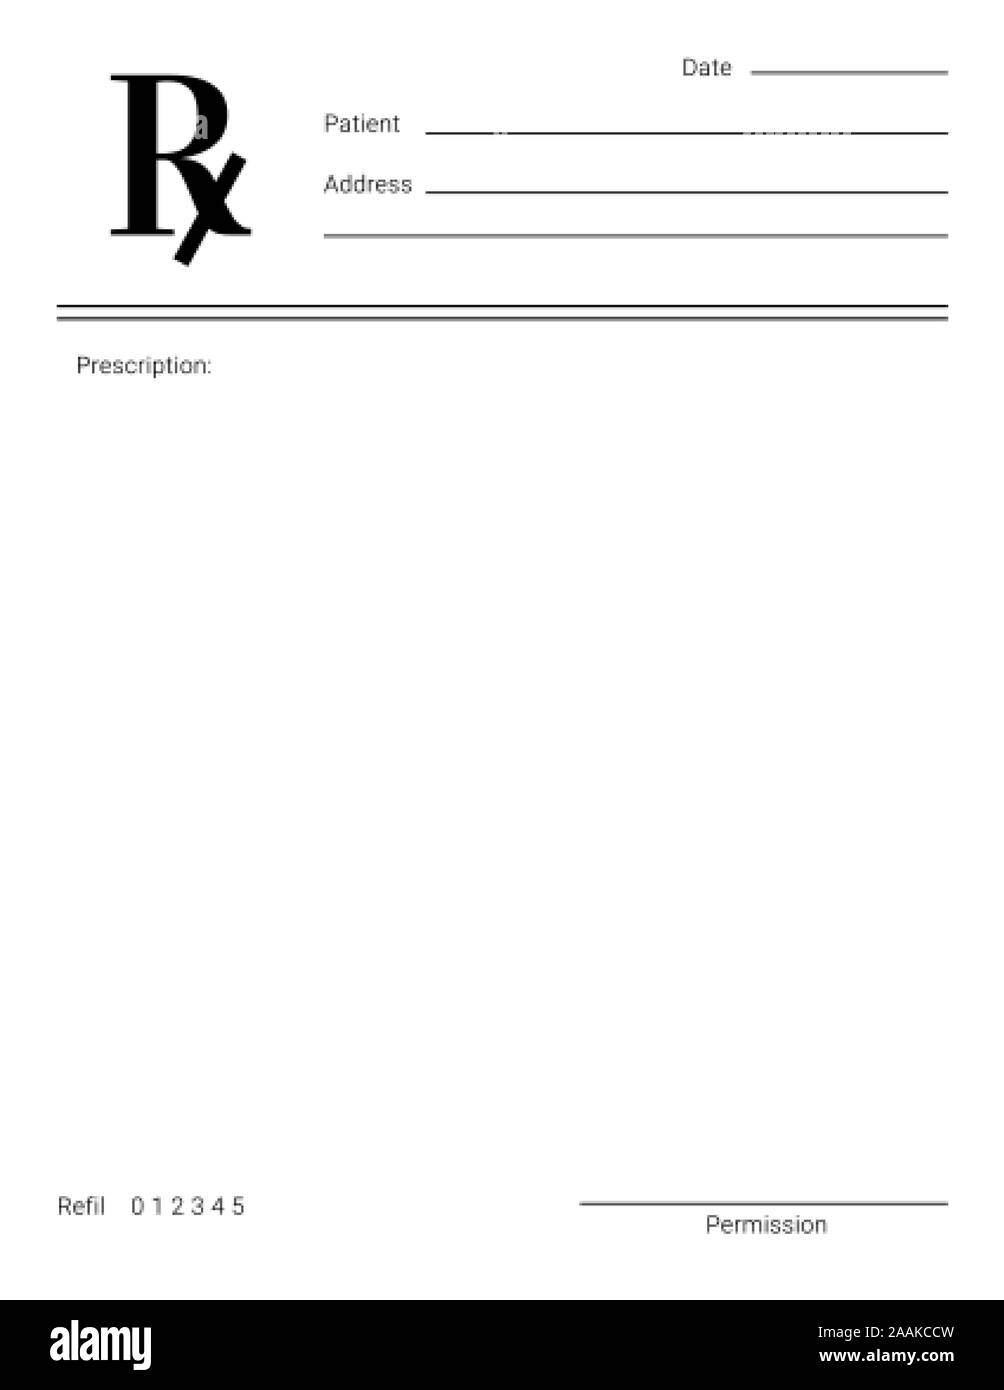 Blank Rx form for medical treatment prescription and drugs list With Regard To Blank Prescription Form Template